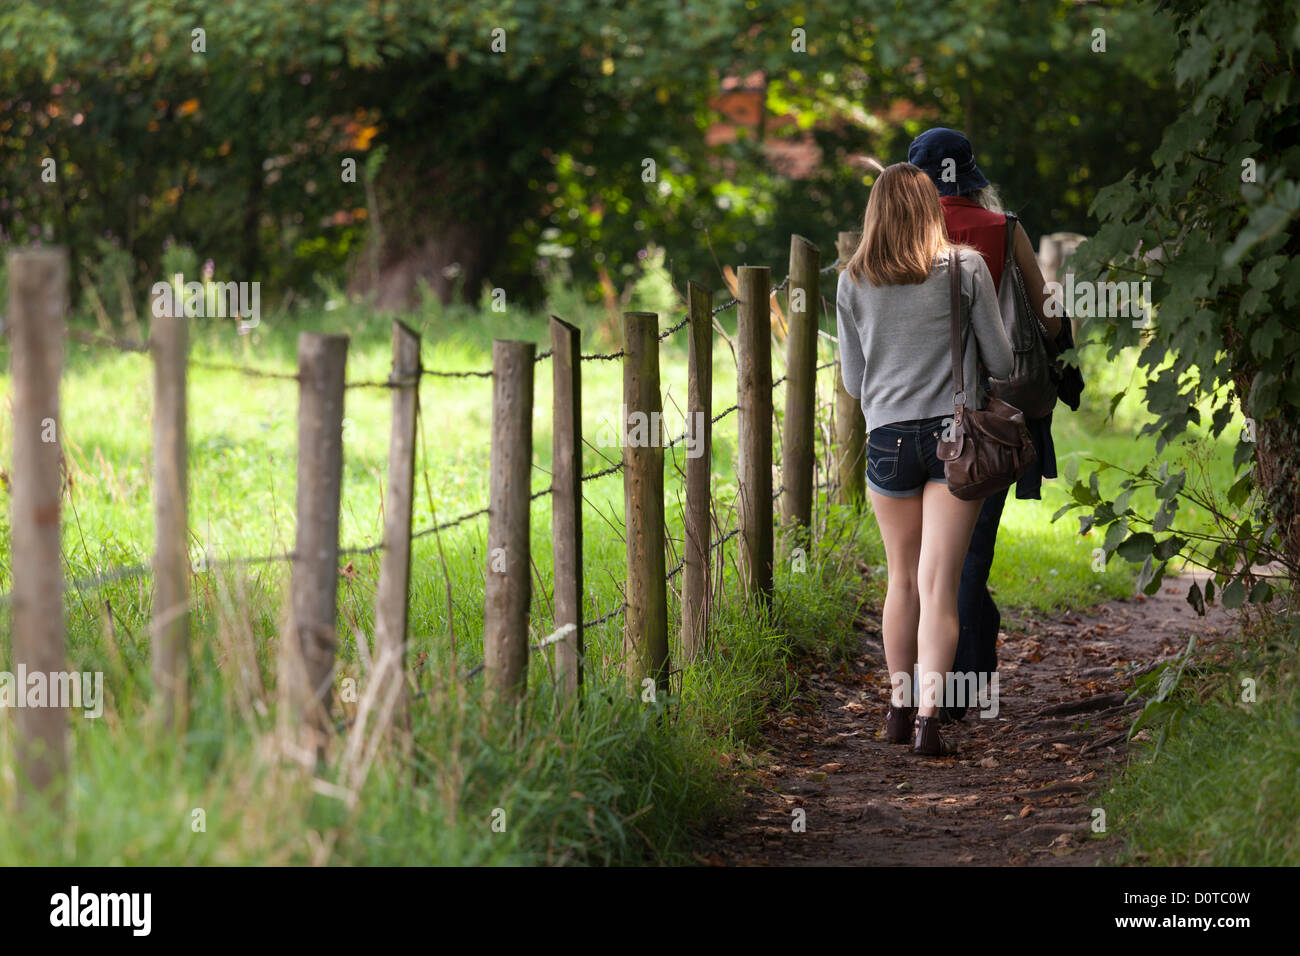 back to camera girl and woman walking on country footpath alongside post and wire fence - Stock Image